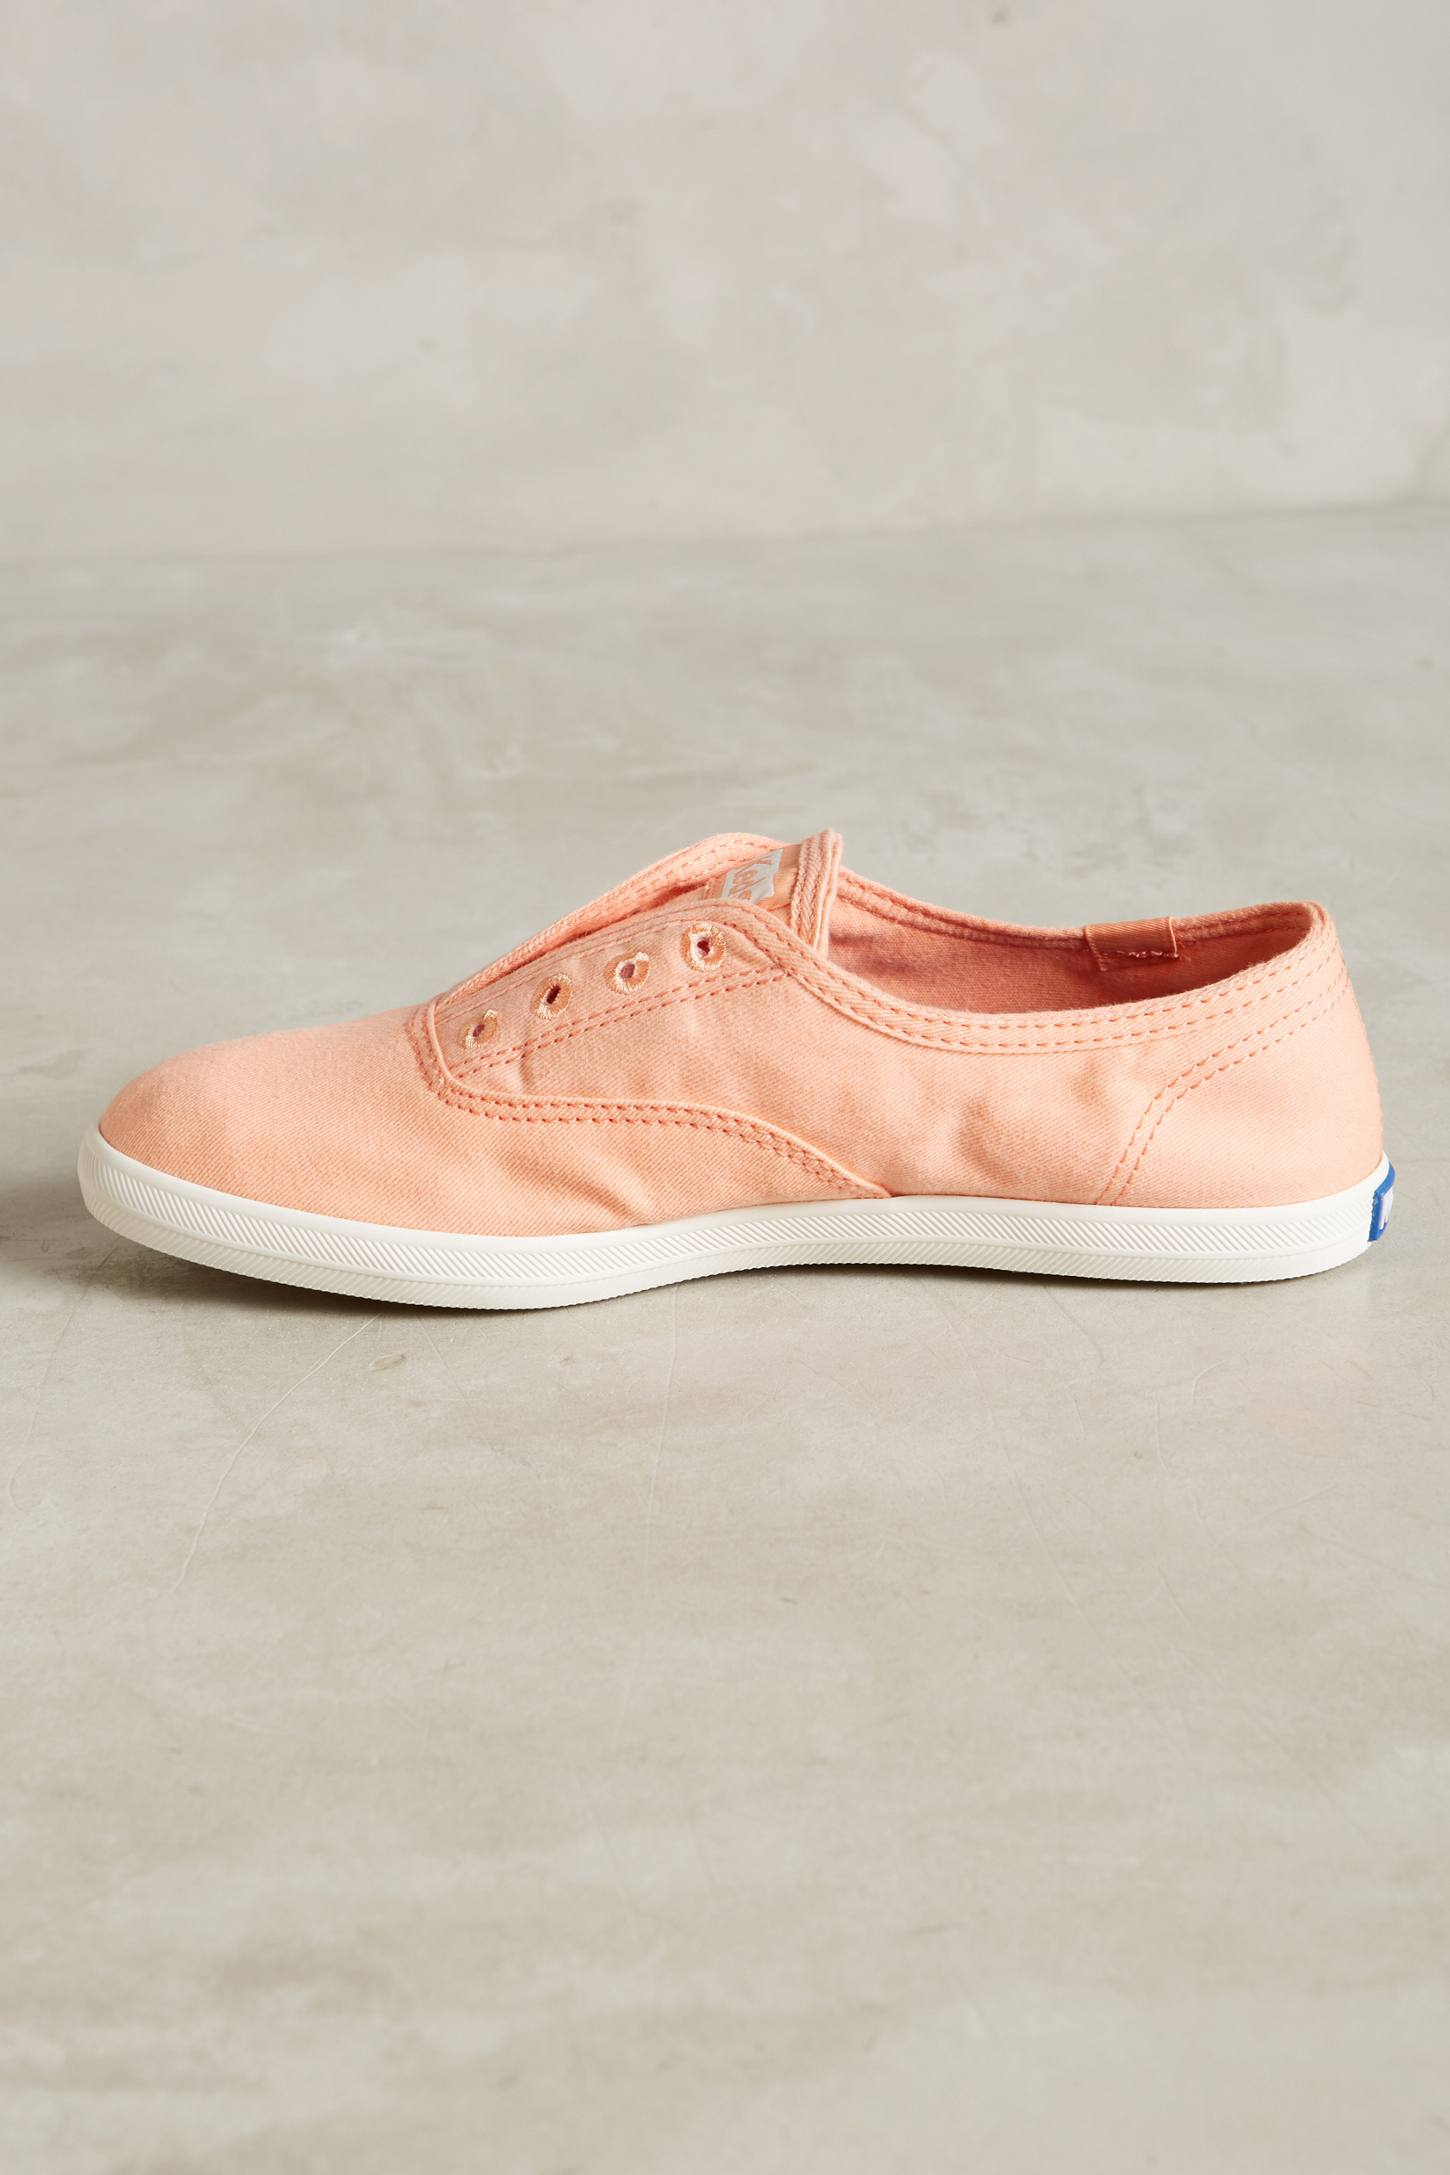 Slide View: 3: Keds Washed Canvas Sneakers